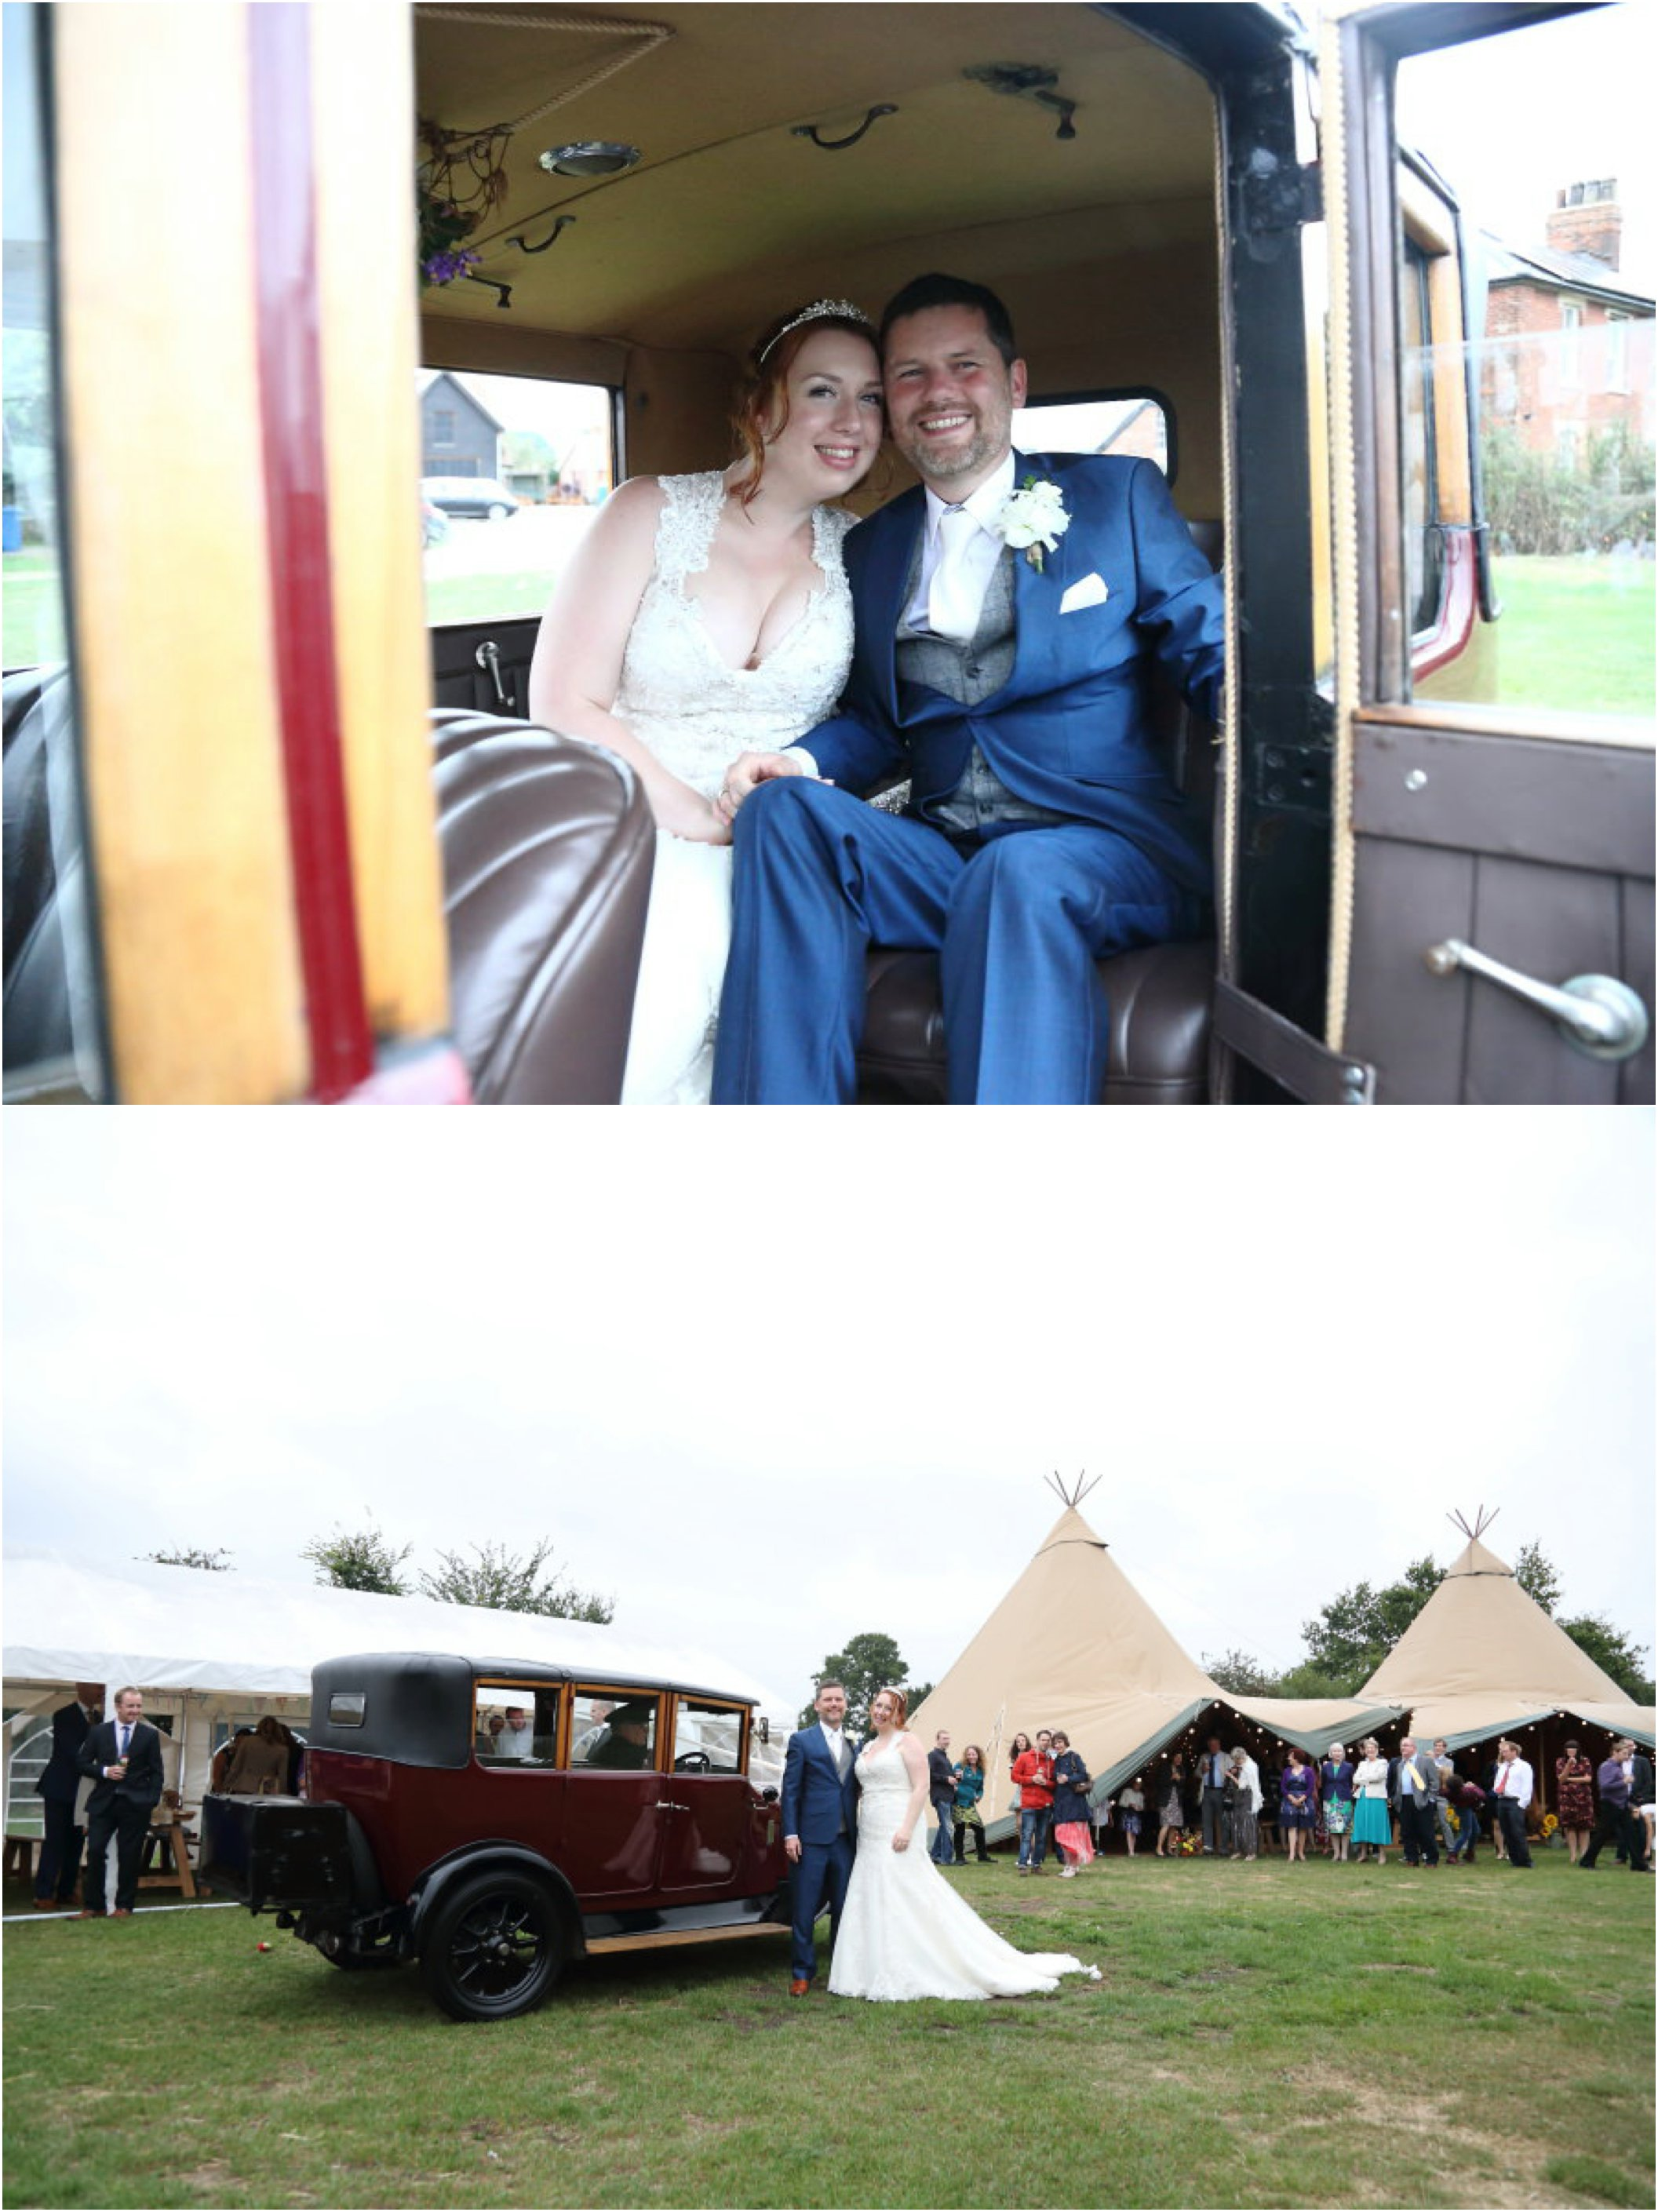 vintage car and tipi wedding reception, Lavenham suffolk